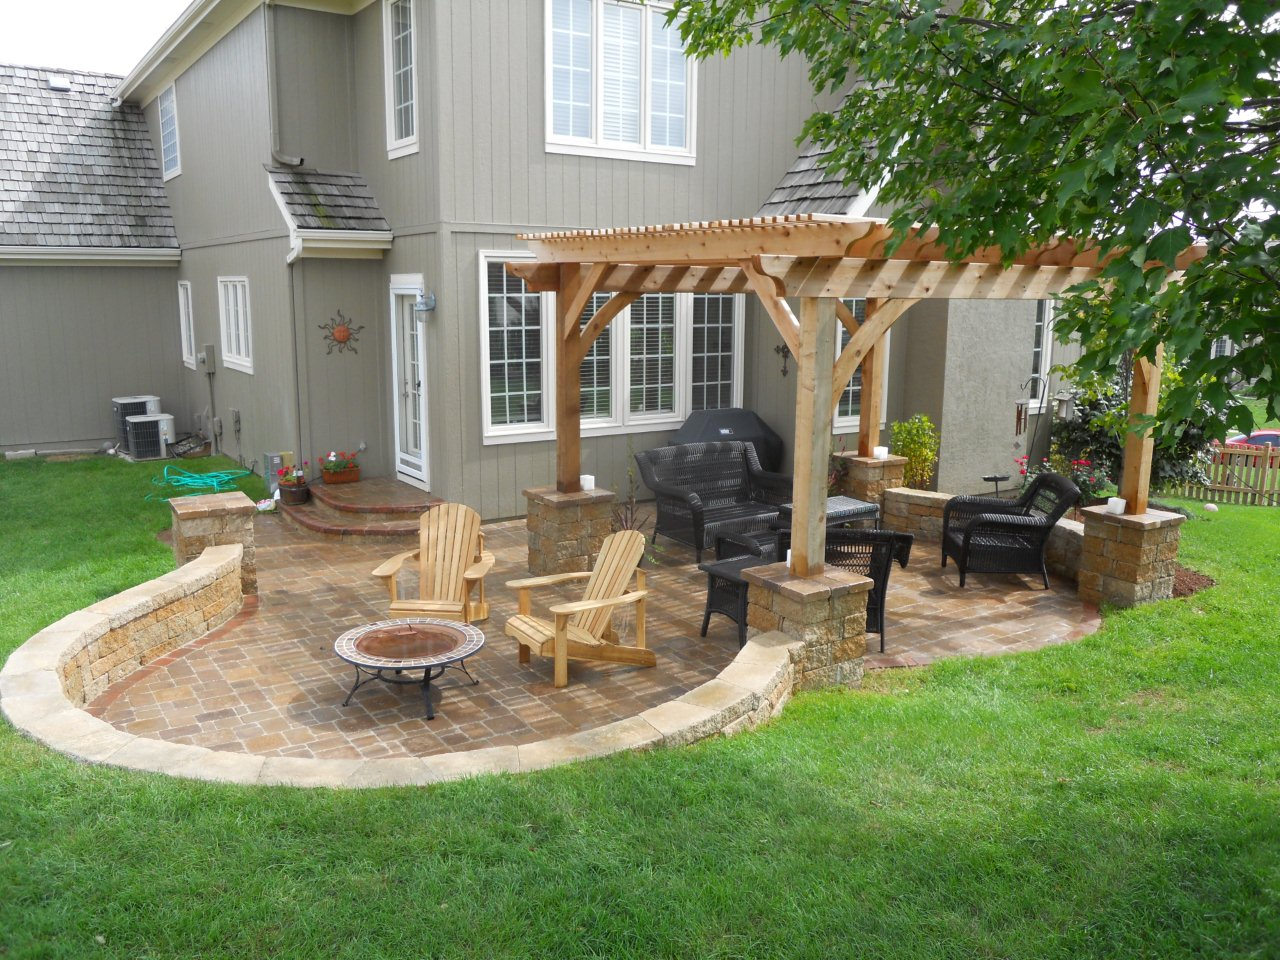 Brick Paver Patio Design Ideas Home Citizen pertaining to 13 Some of the Coolest Initiatives of How to Improve Backyard Stone Patio Ideas